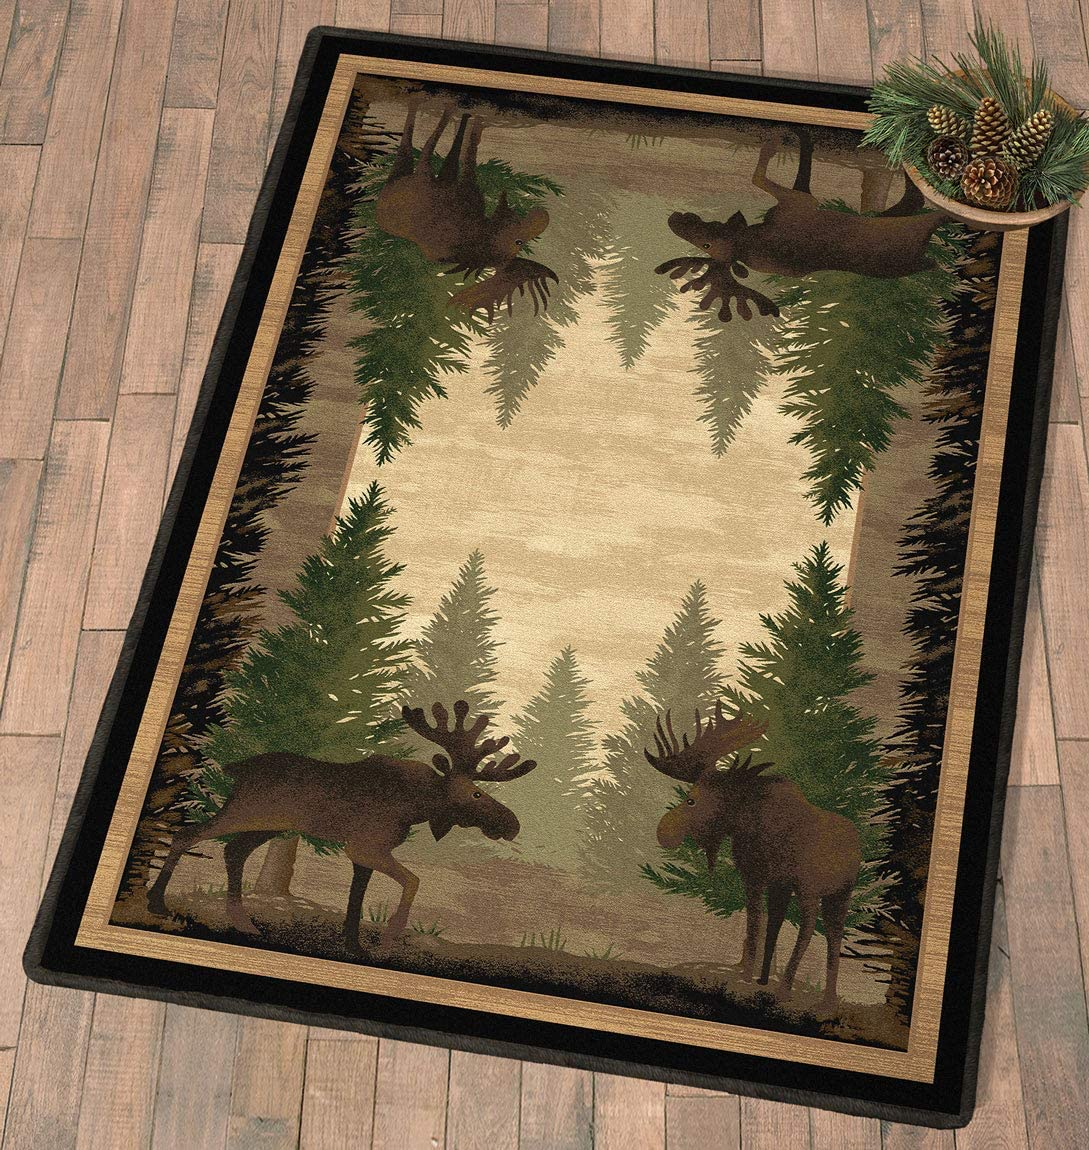 Chardin home Farmhouse Jute Natural Braid Rug, Natural, Size 3 Rnd.